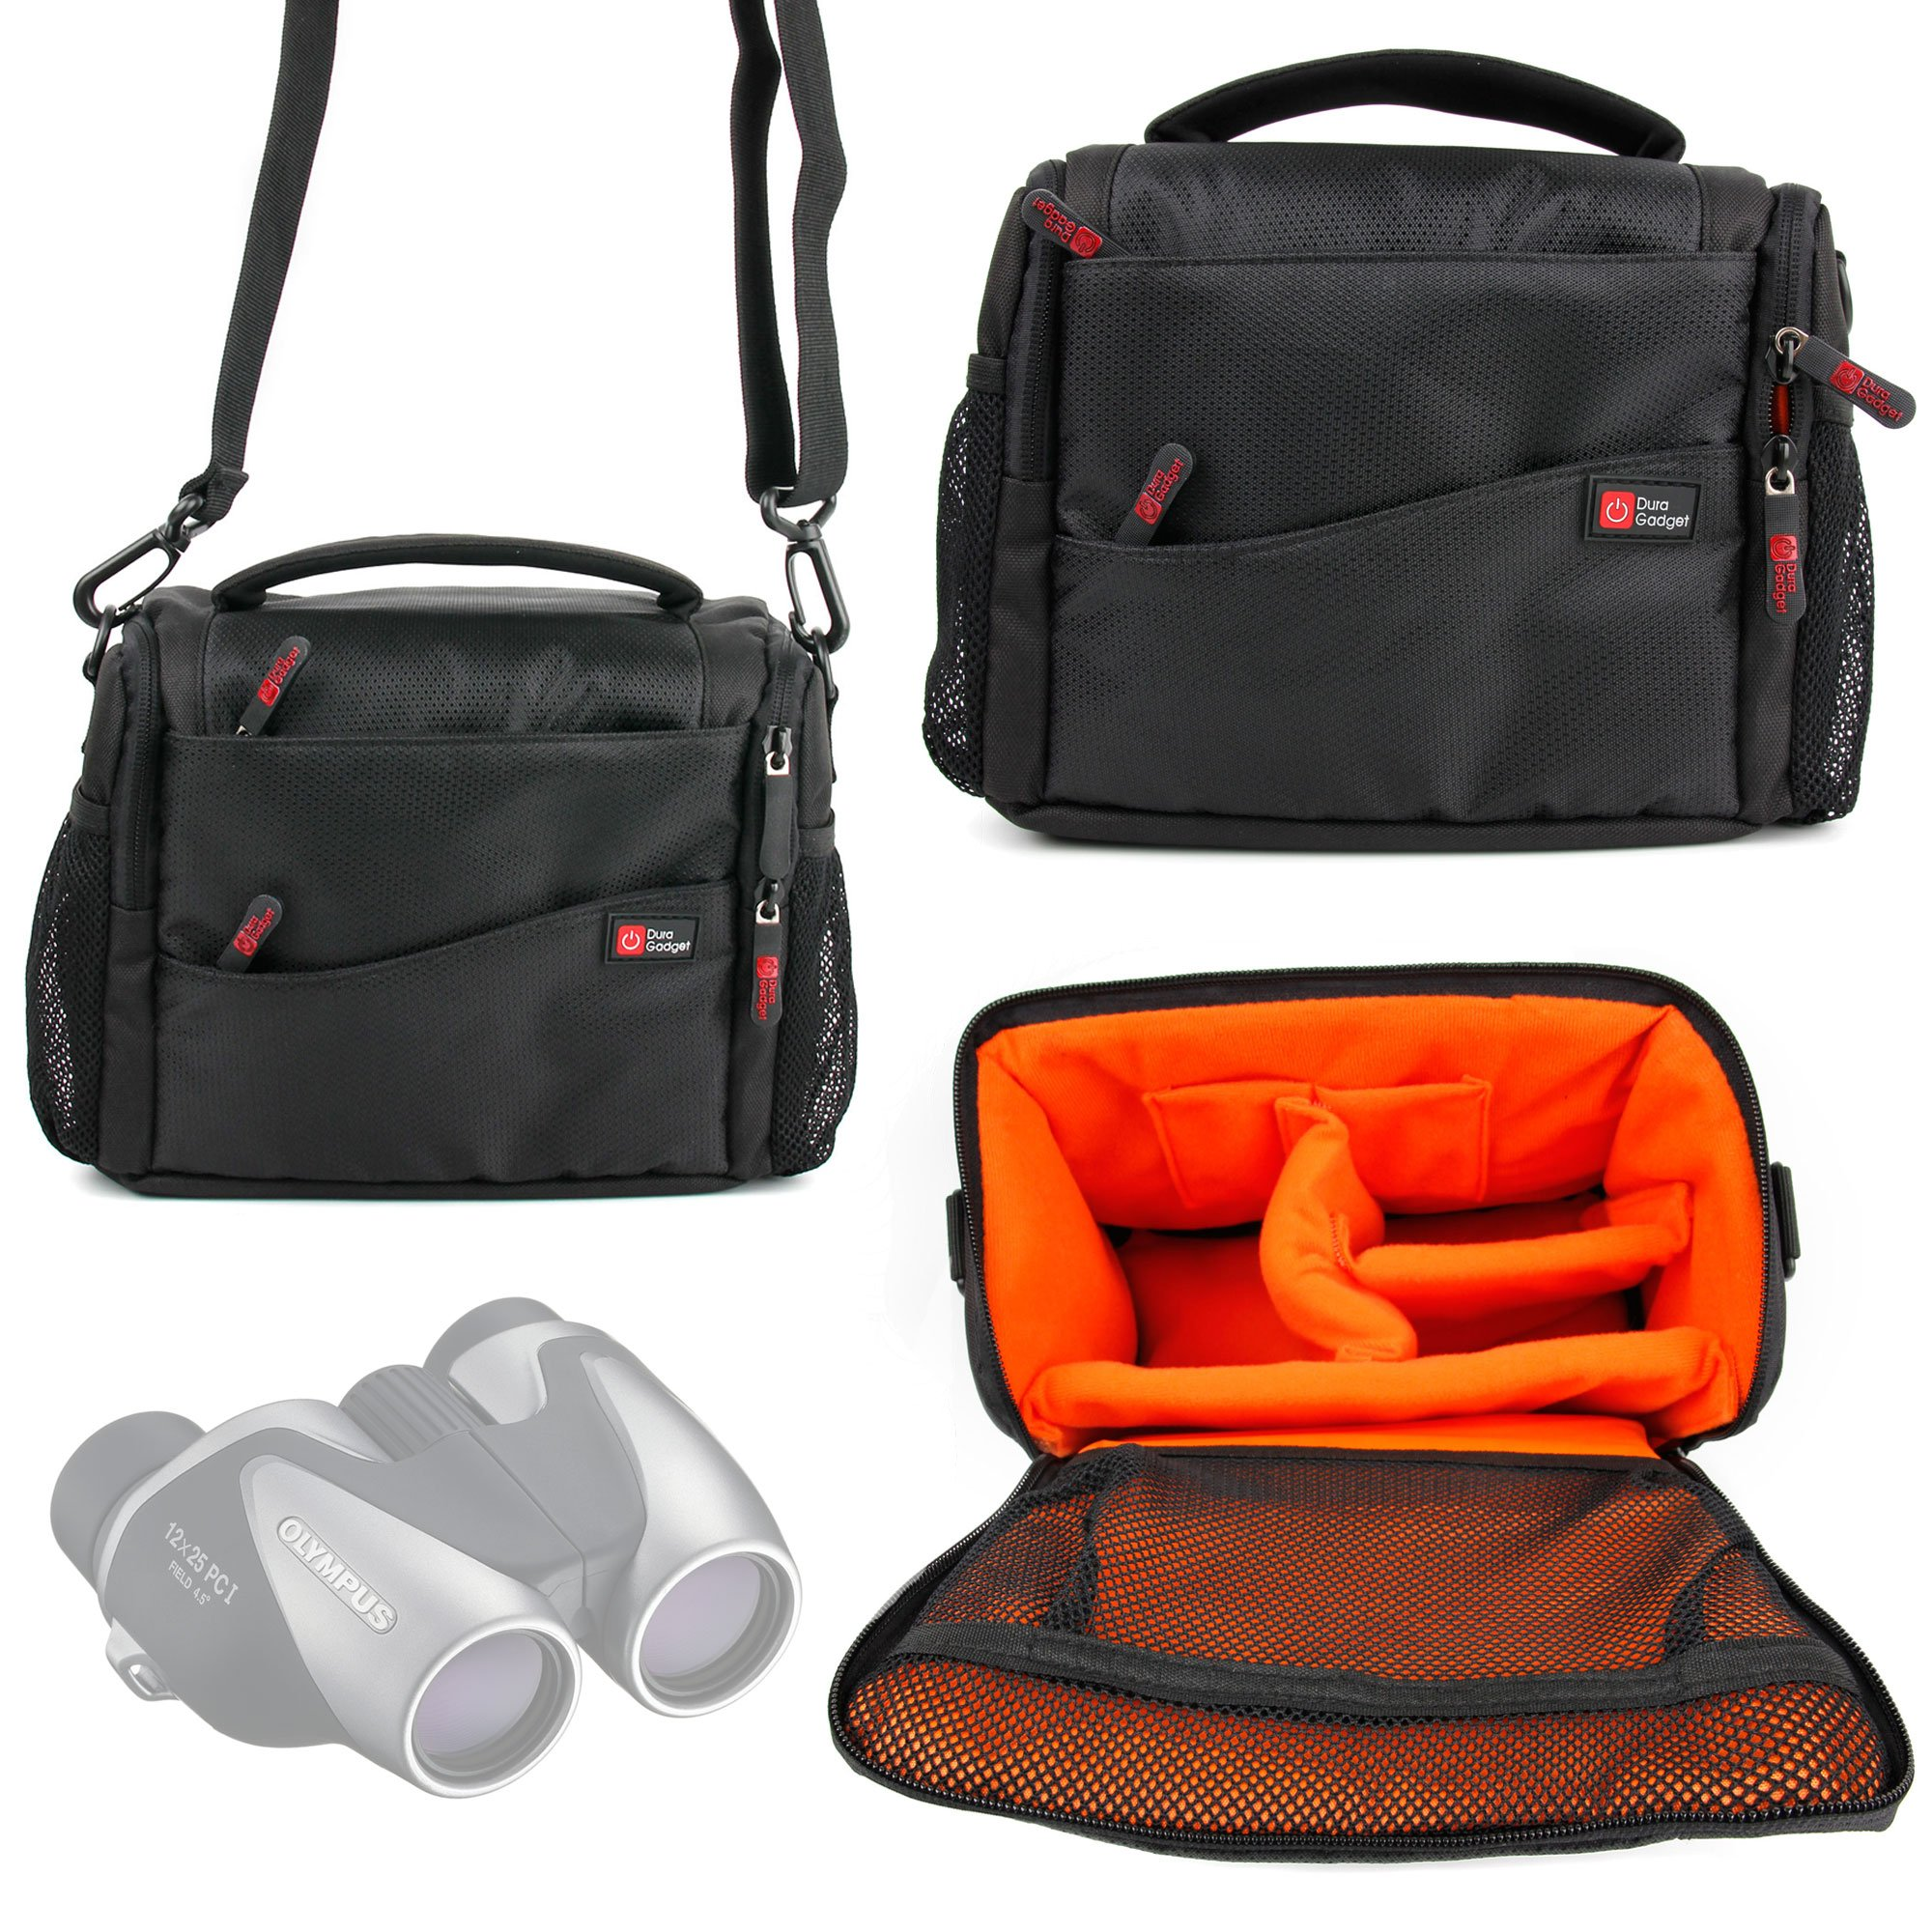 DURAGADGET Shock-Absorbing & Water-Resistant Carry Bag in Black & Orange Compatible With the Celestron ECLIPSMART 10X25 SOLAR